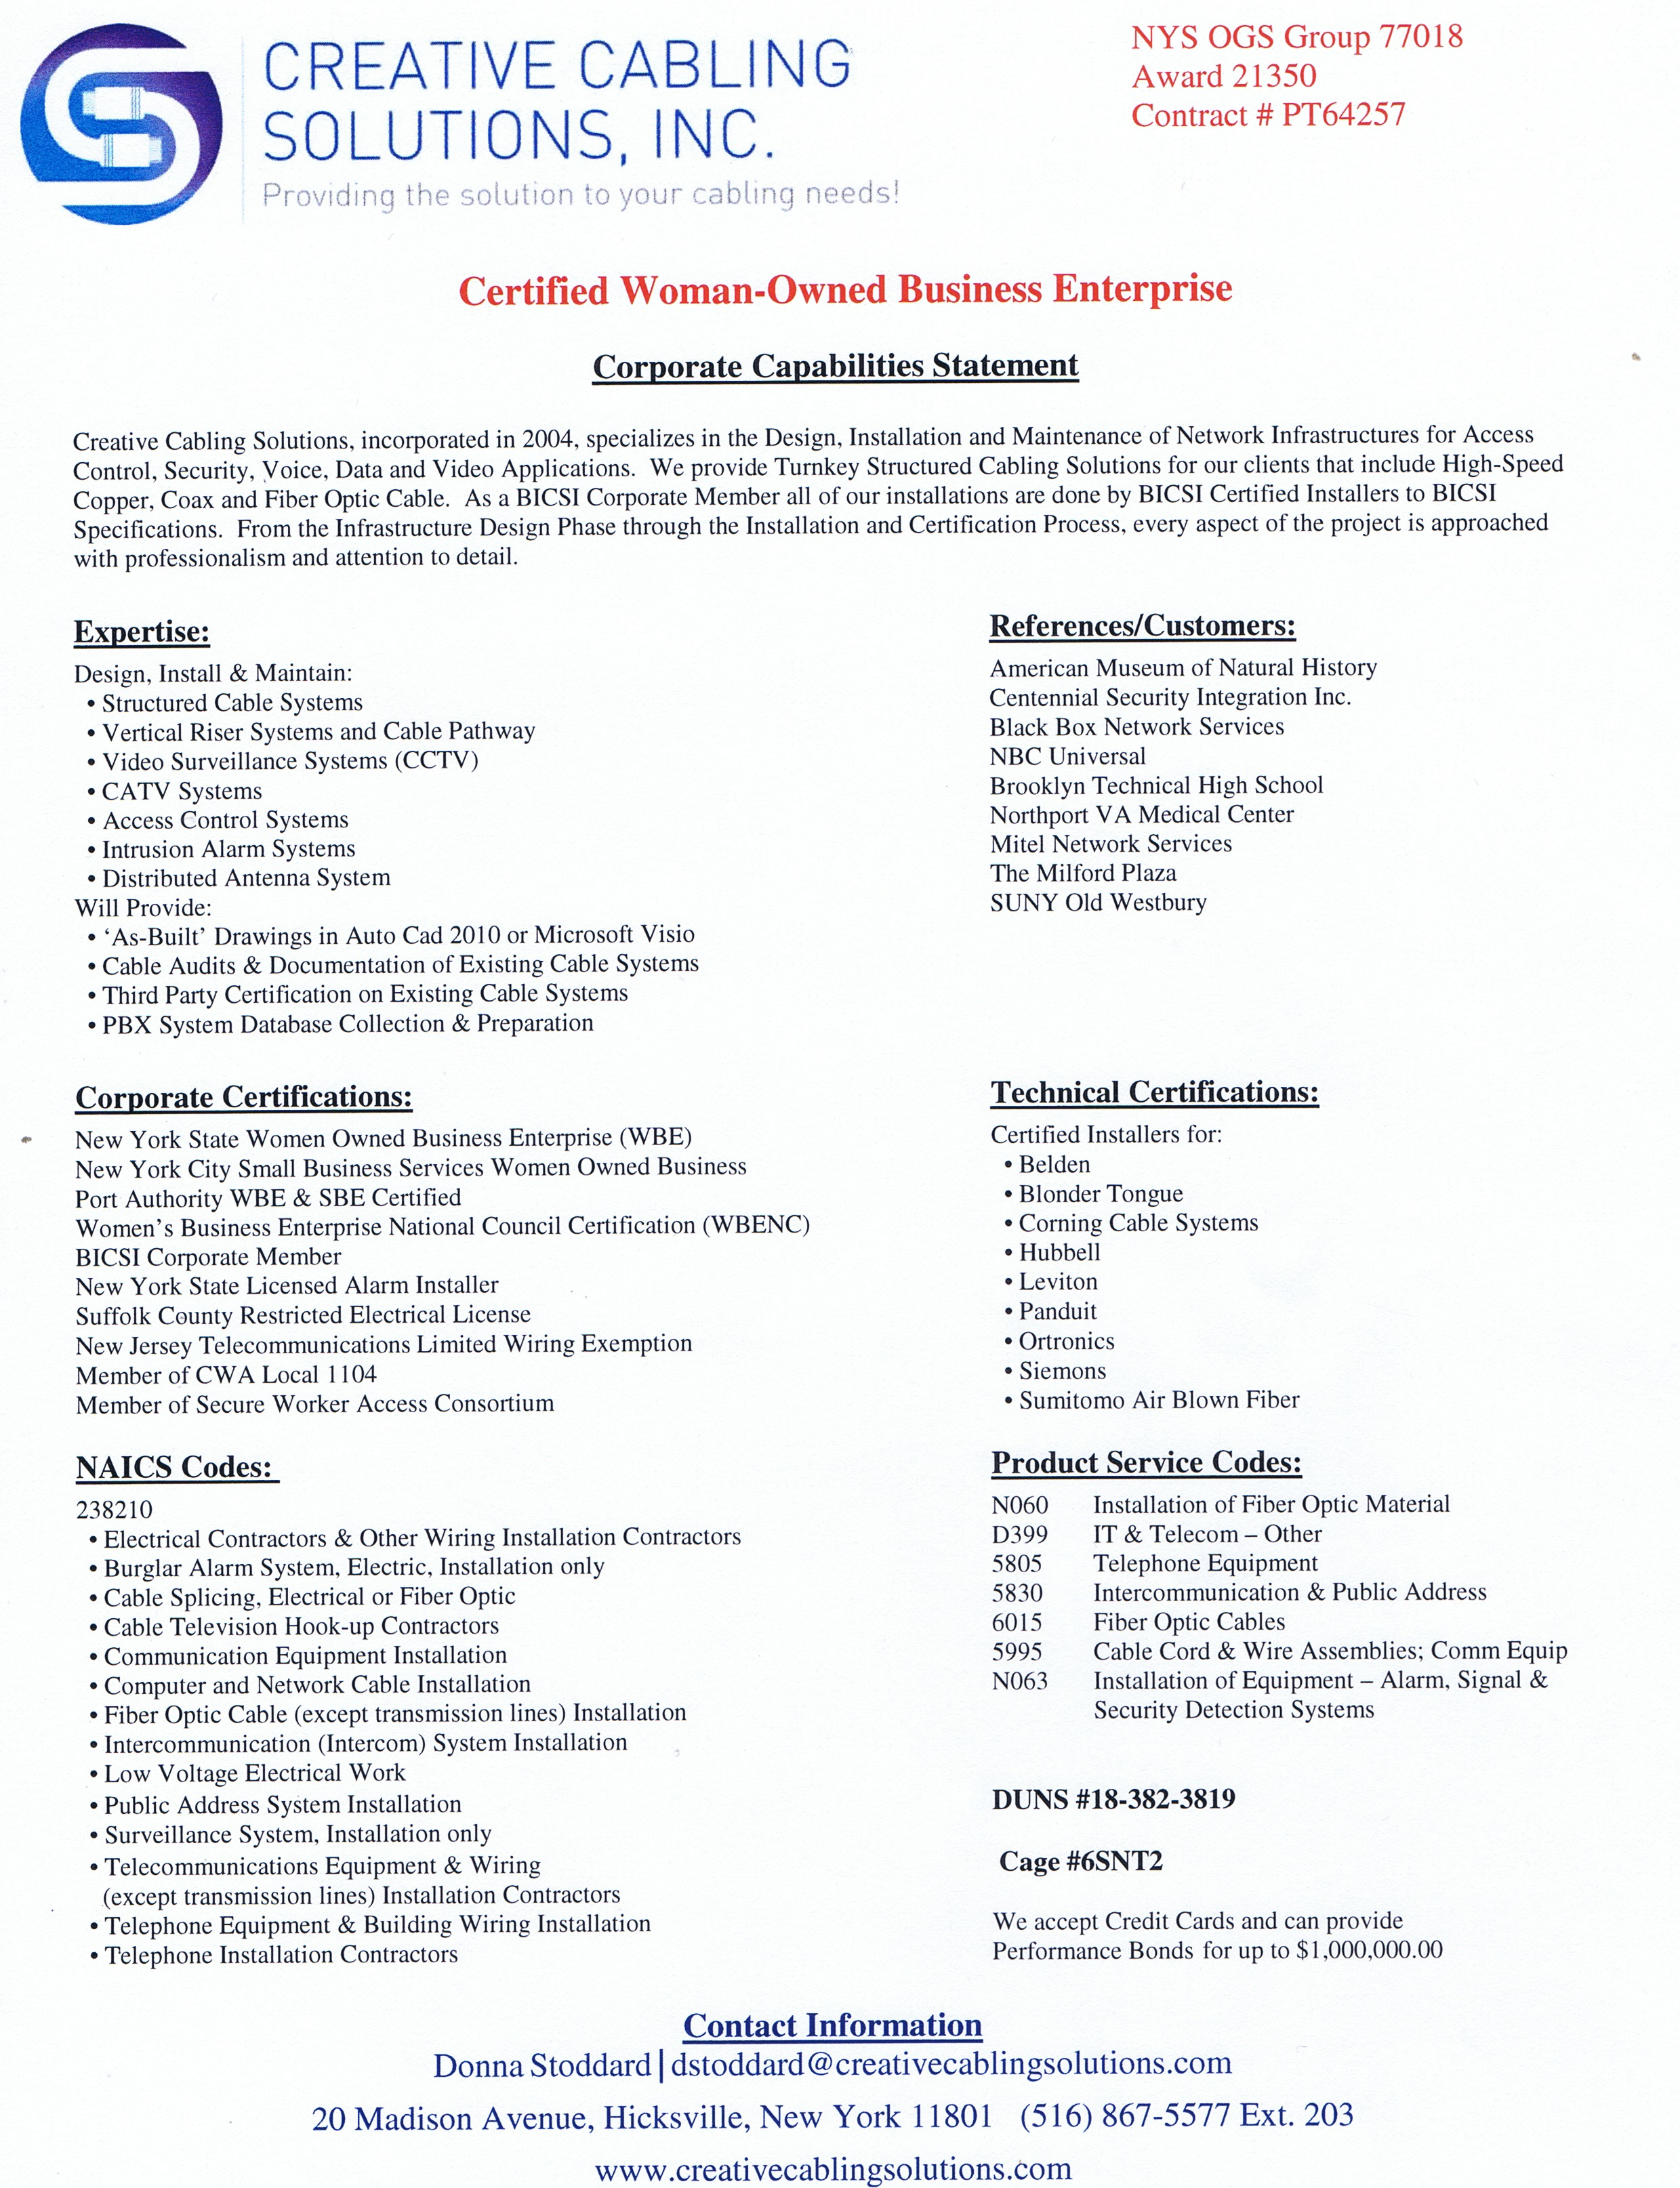 Corporate Capabilities Statement | Creative Cabling